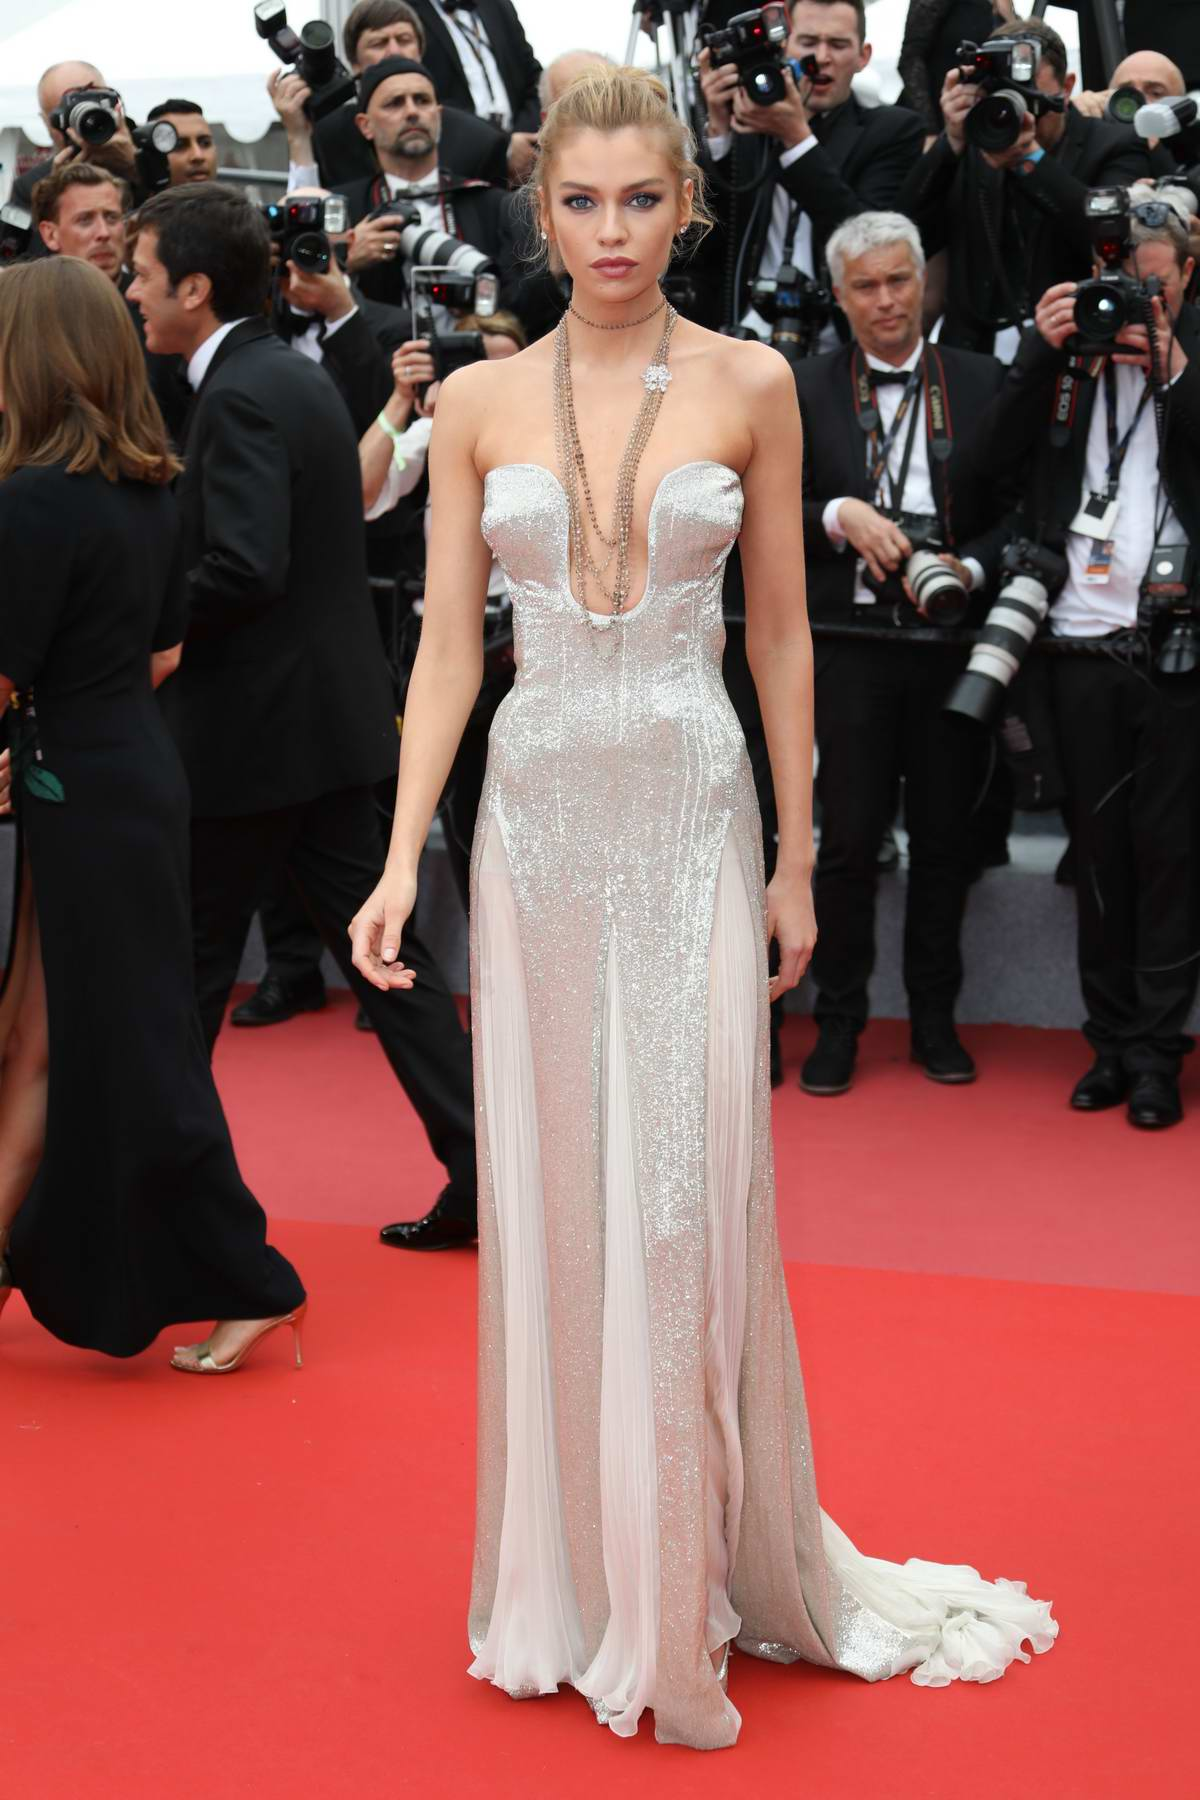 Stella Maxwell at the premiere of 'Sorry Angel' during 71st Cannes Film Festival in Cannes, France